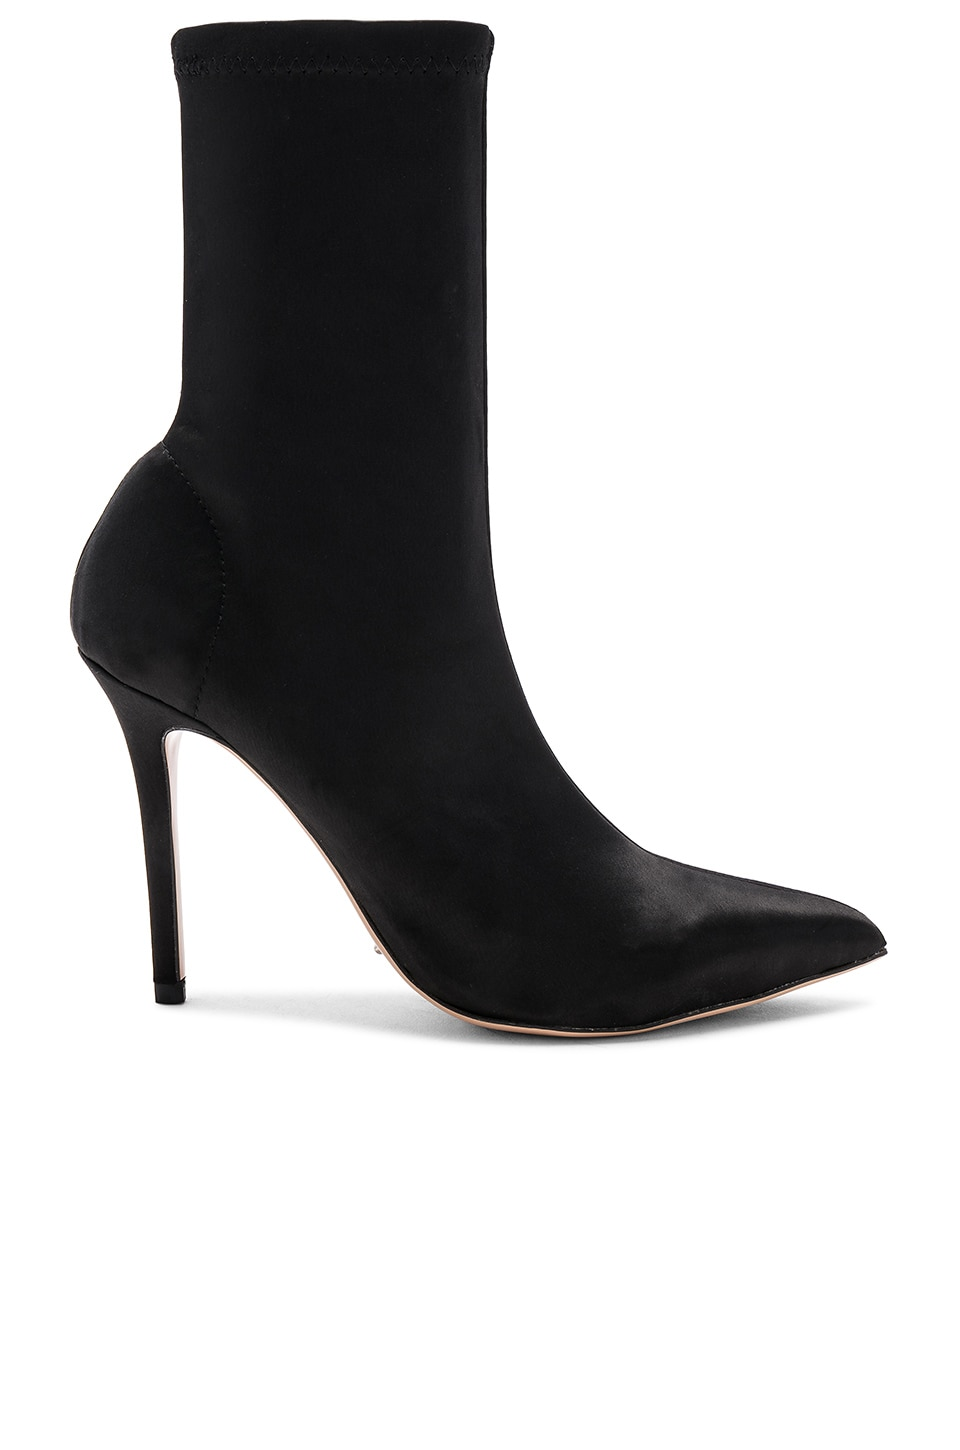 Tony Bianco Davis Bootie in Black Stretch Satin